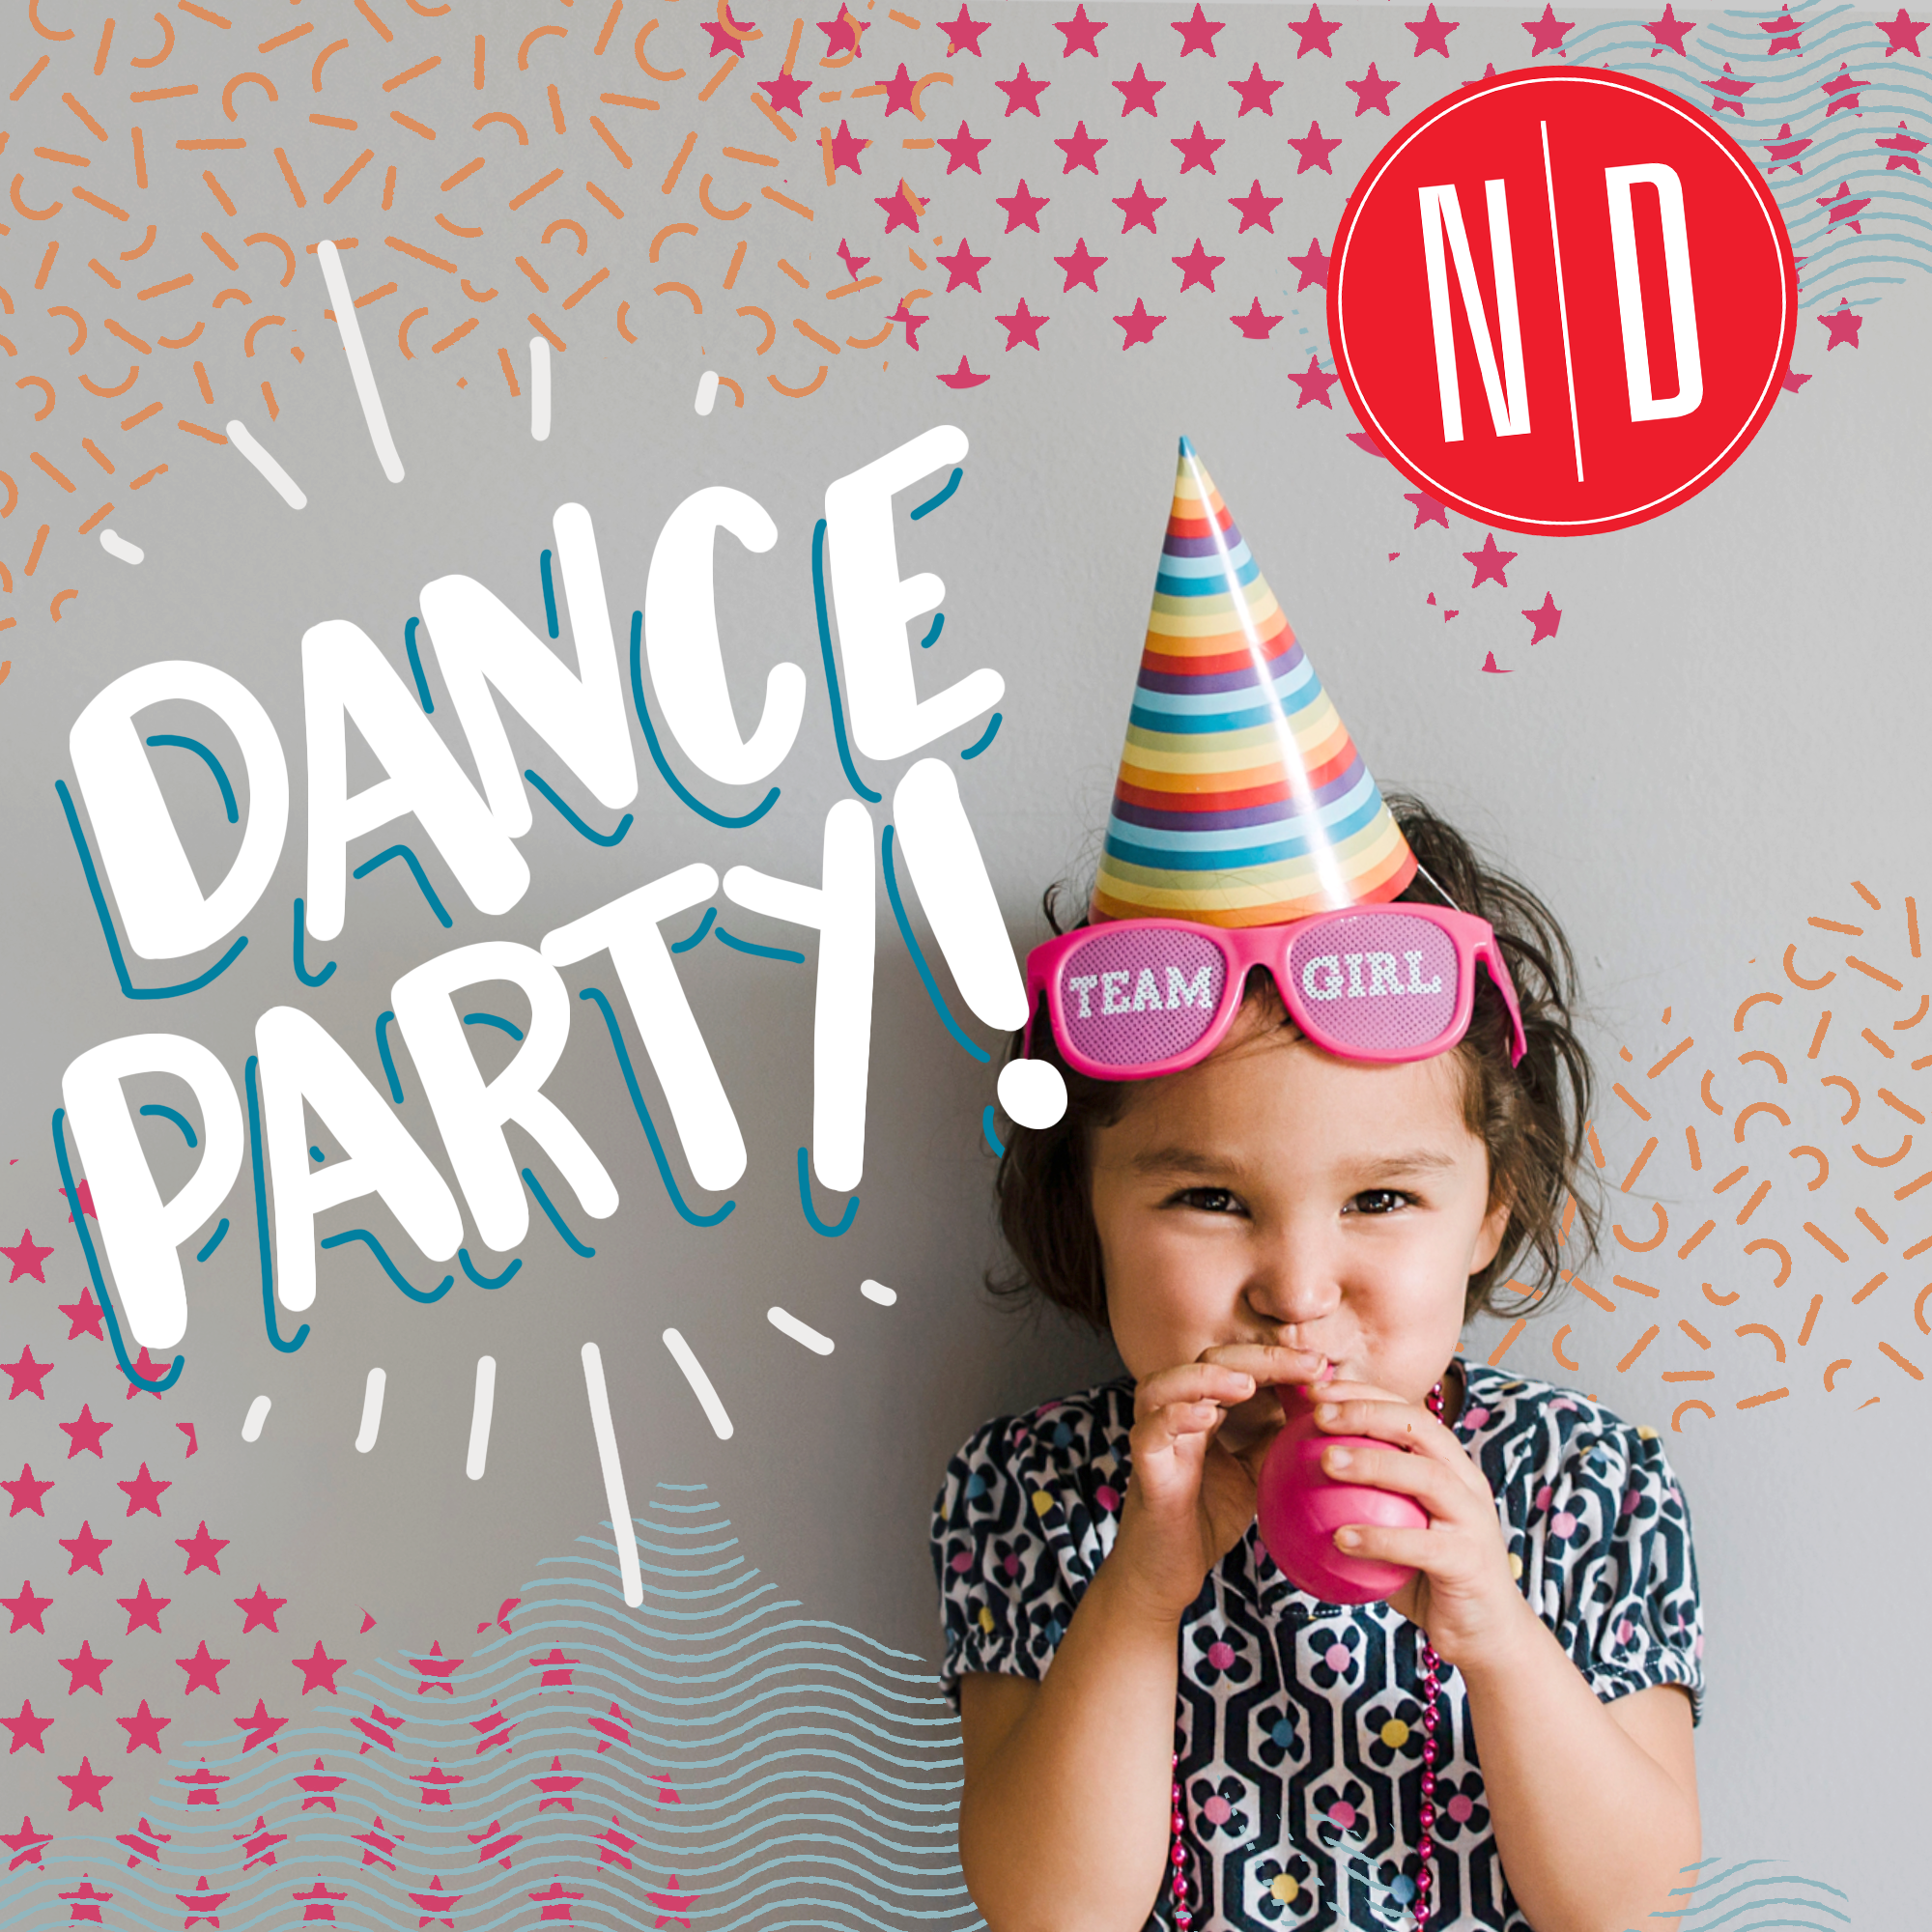 Dance Party! - Wednesday, June 26th · 6:00 to 7:00pm ORWednesday, July 31st · 6:00 to 7:00pmLittles (along their favorite big person) can let loose with some of their favorite things: bubbles and balloons! Set to fun music so grown-ups may even want to join in this dance party! A great introduction to music, moving and fun! Attire: Any comfortable clothing that your little can move in!Price: $20